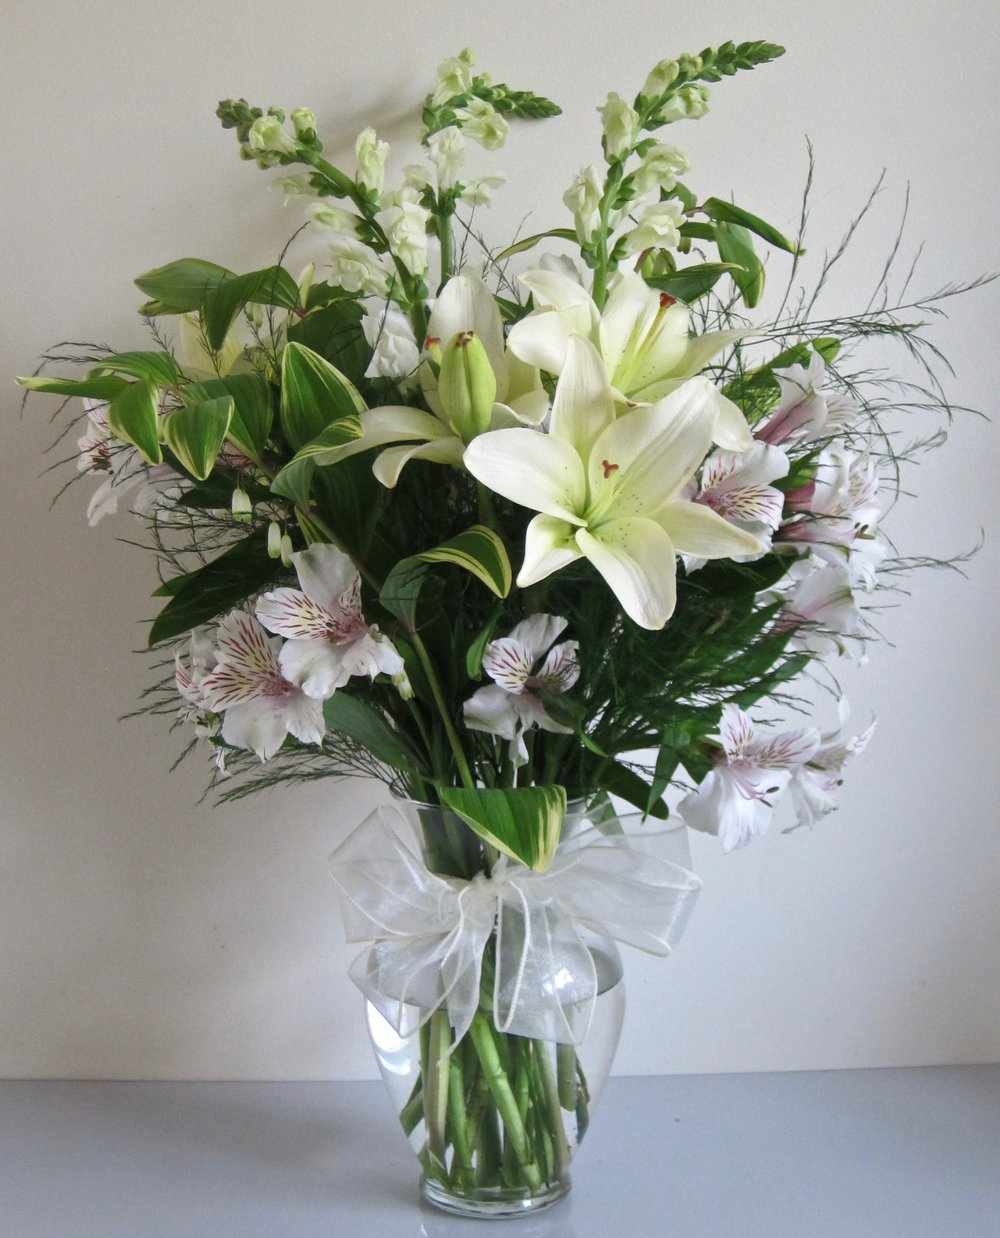 GREEN & WHITE   Bouquet featuring lillies, snapdragons, solomon's seal, ferns and alstroemeria,  $55.